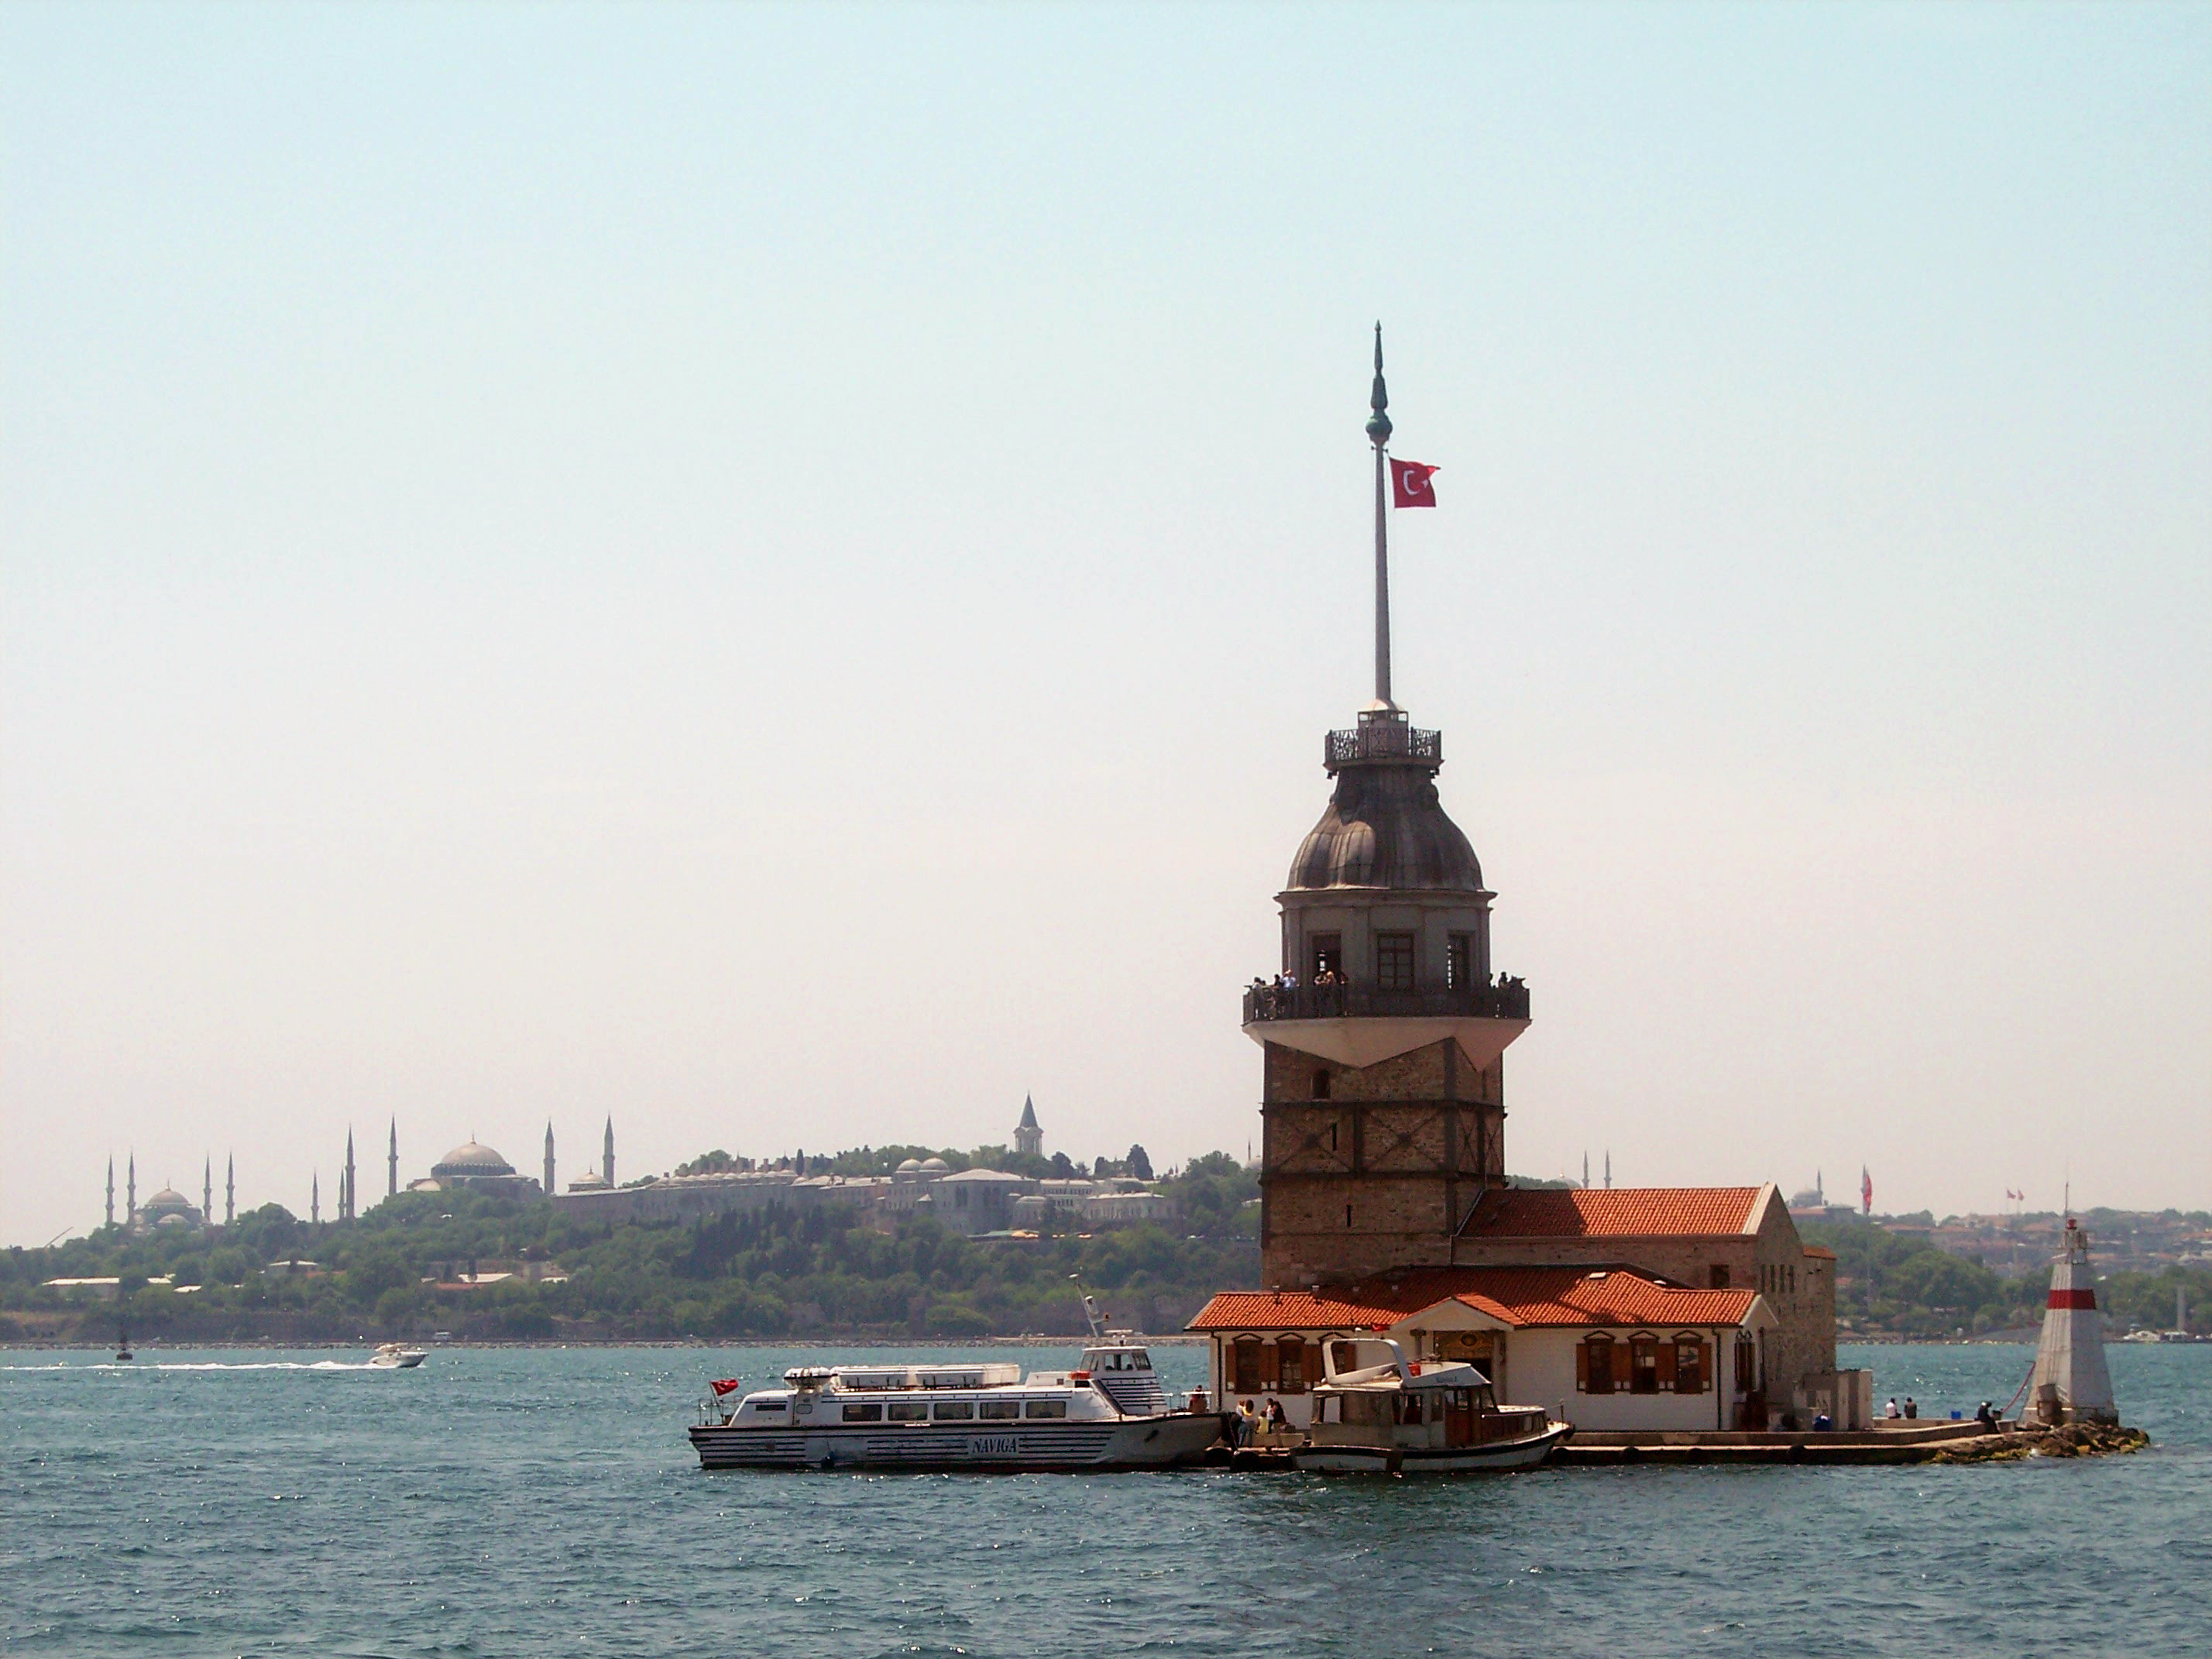 The Maiden's Tower in Istanbul, Turkey. Photo taken on January 23, 2004